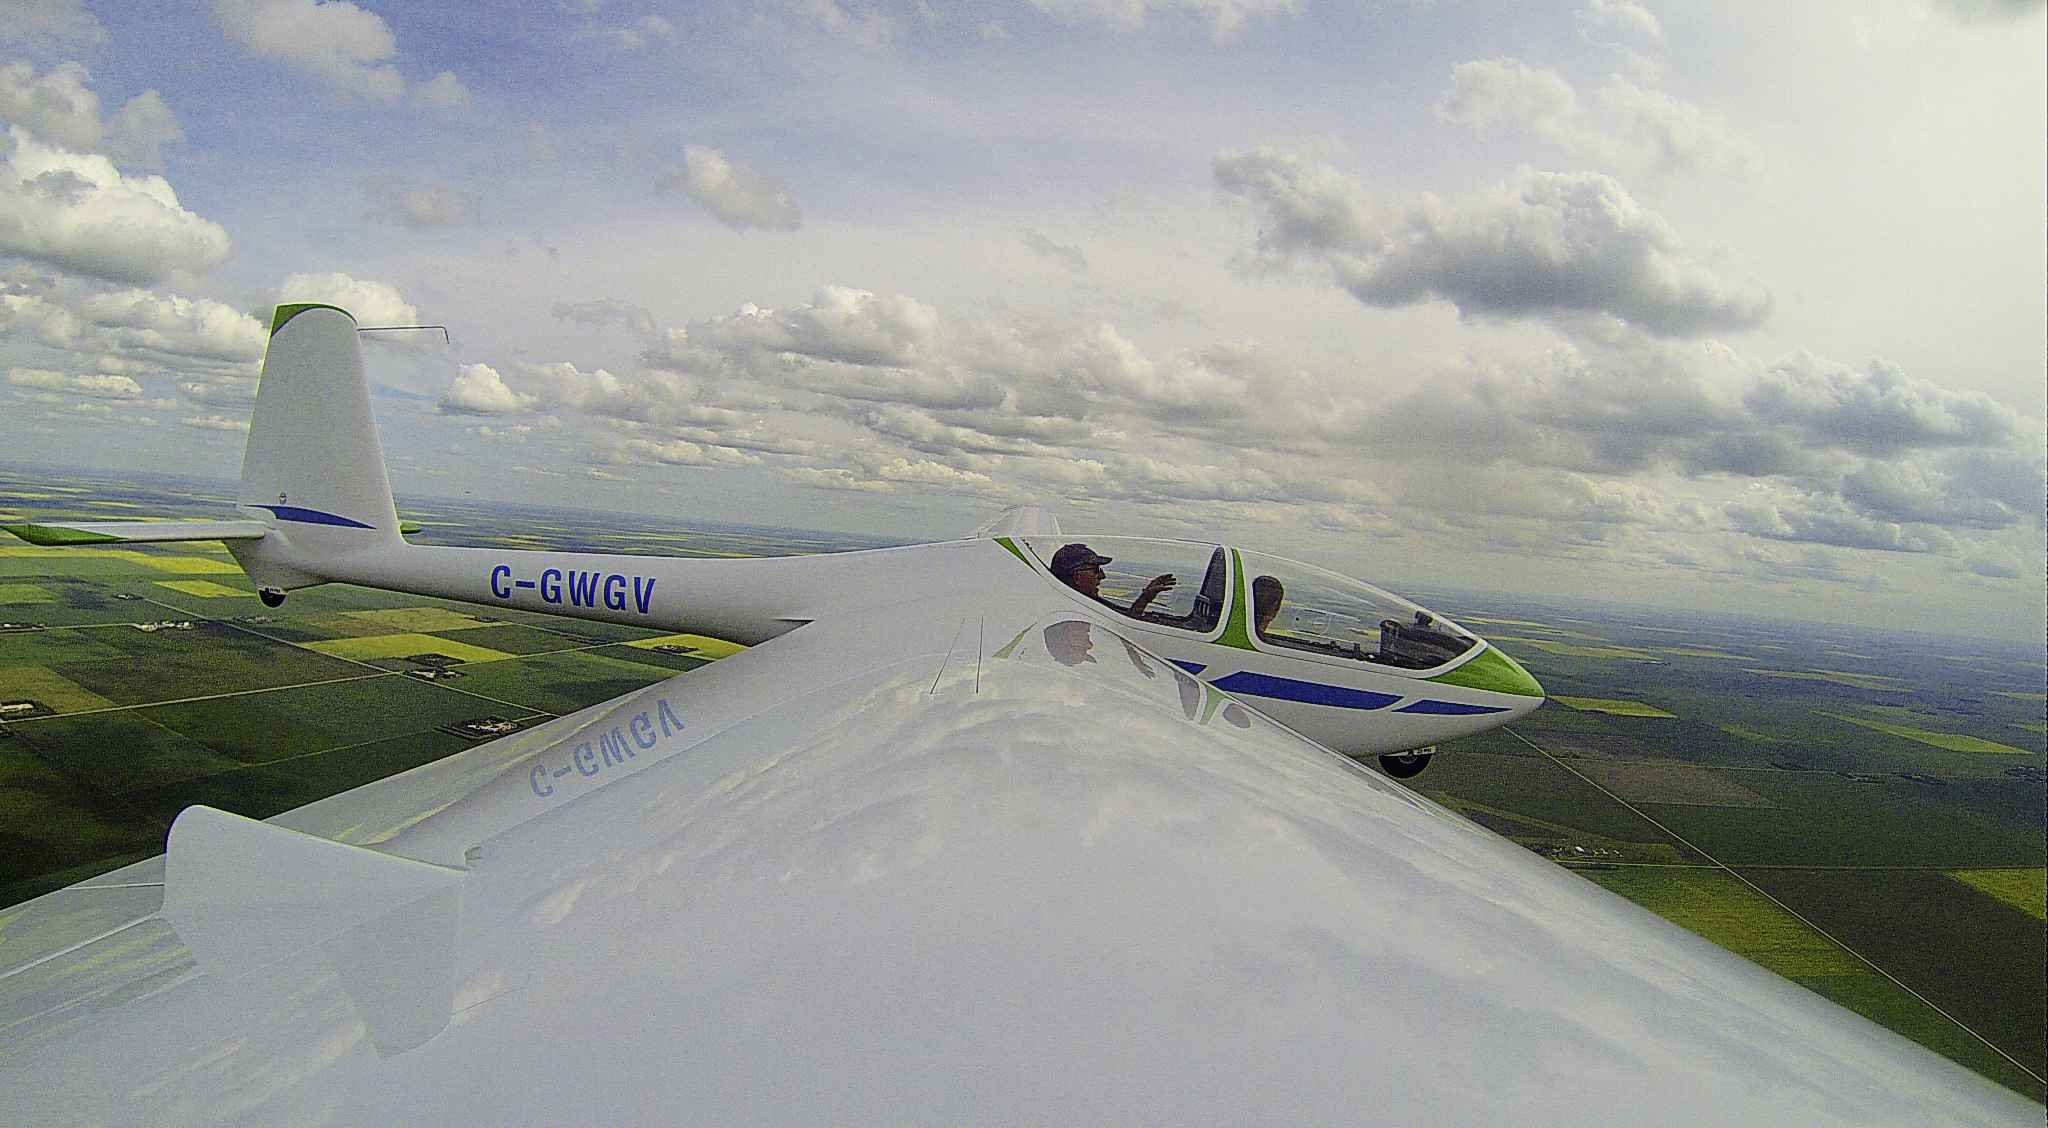 MIKAELA MACKENZIE / WINNIPEG FREE PRESS  Winnipeg Gliding Club president Mike Maskell (rear) glides above the Starbuck Airfield southwest of Winnipeg with photographer Mikaela MacKenzie.